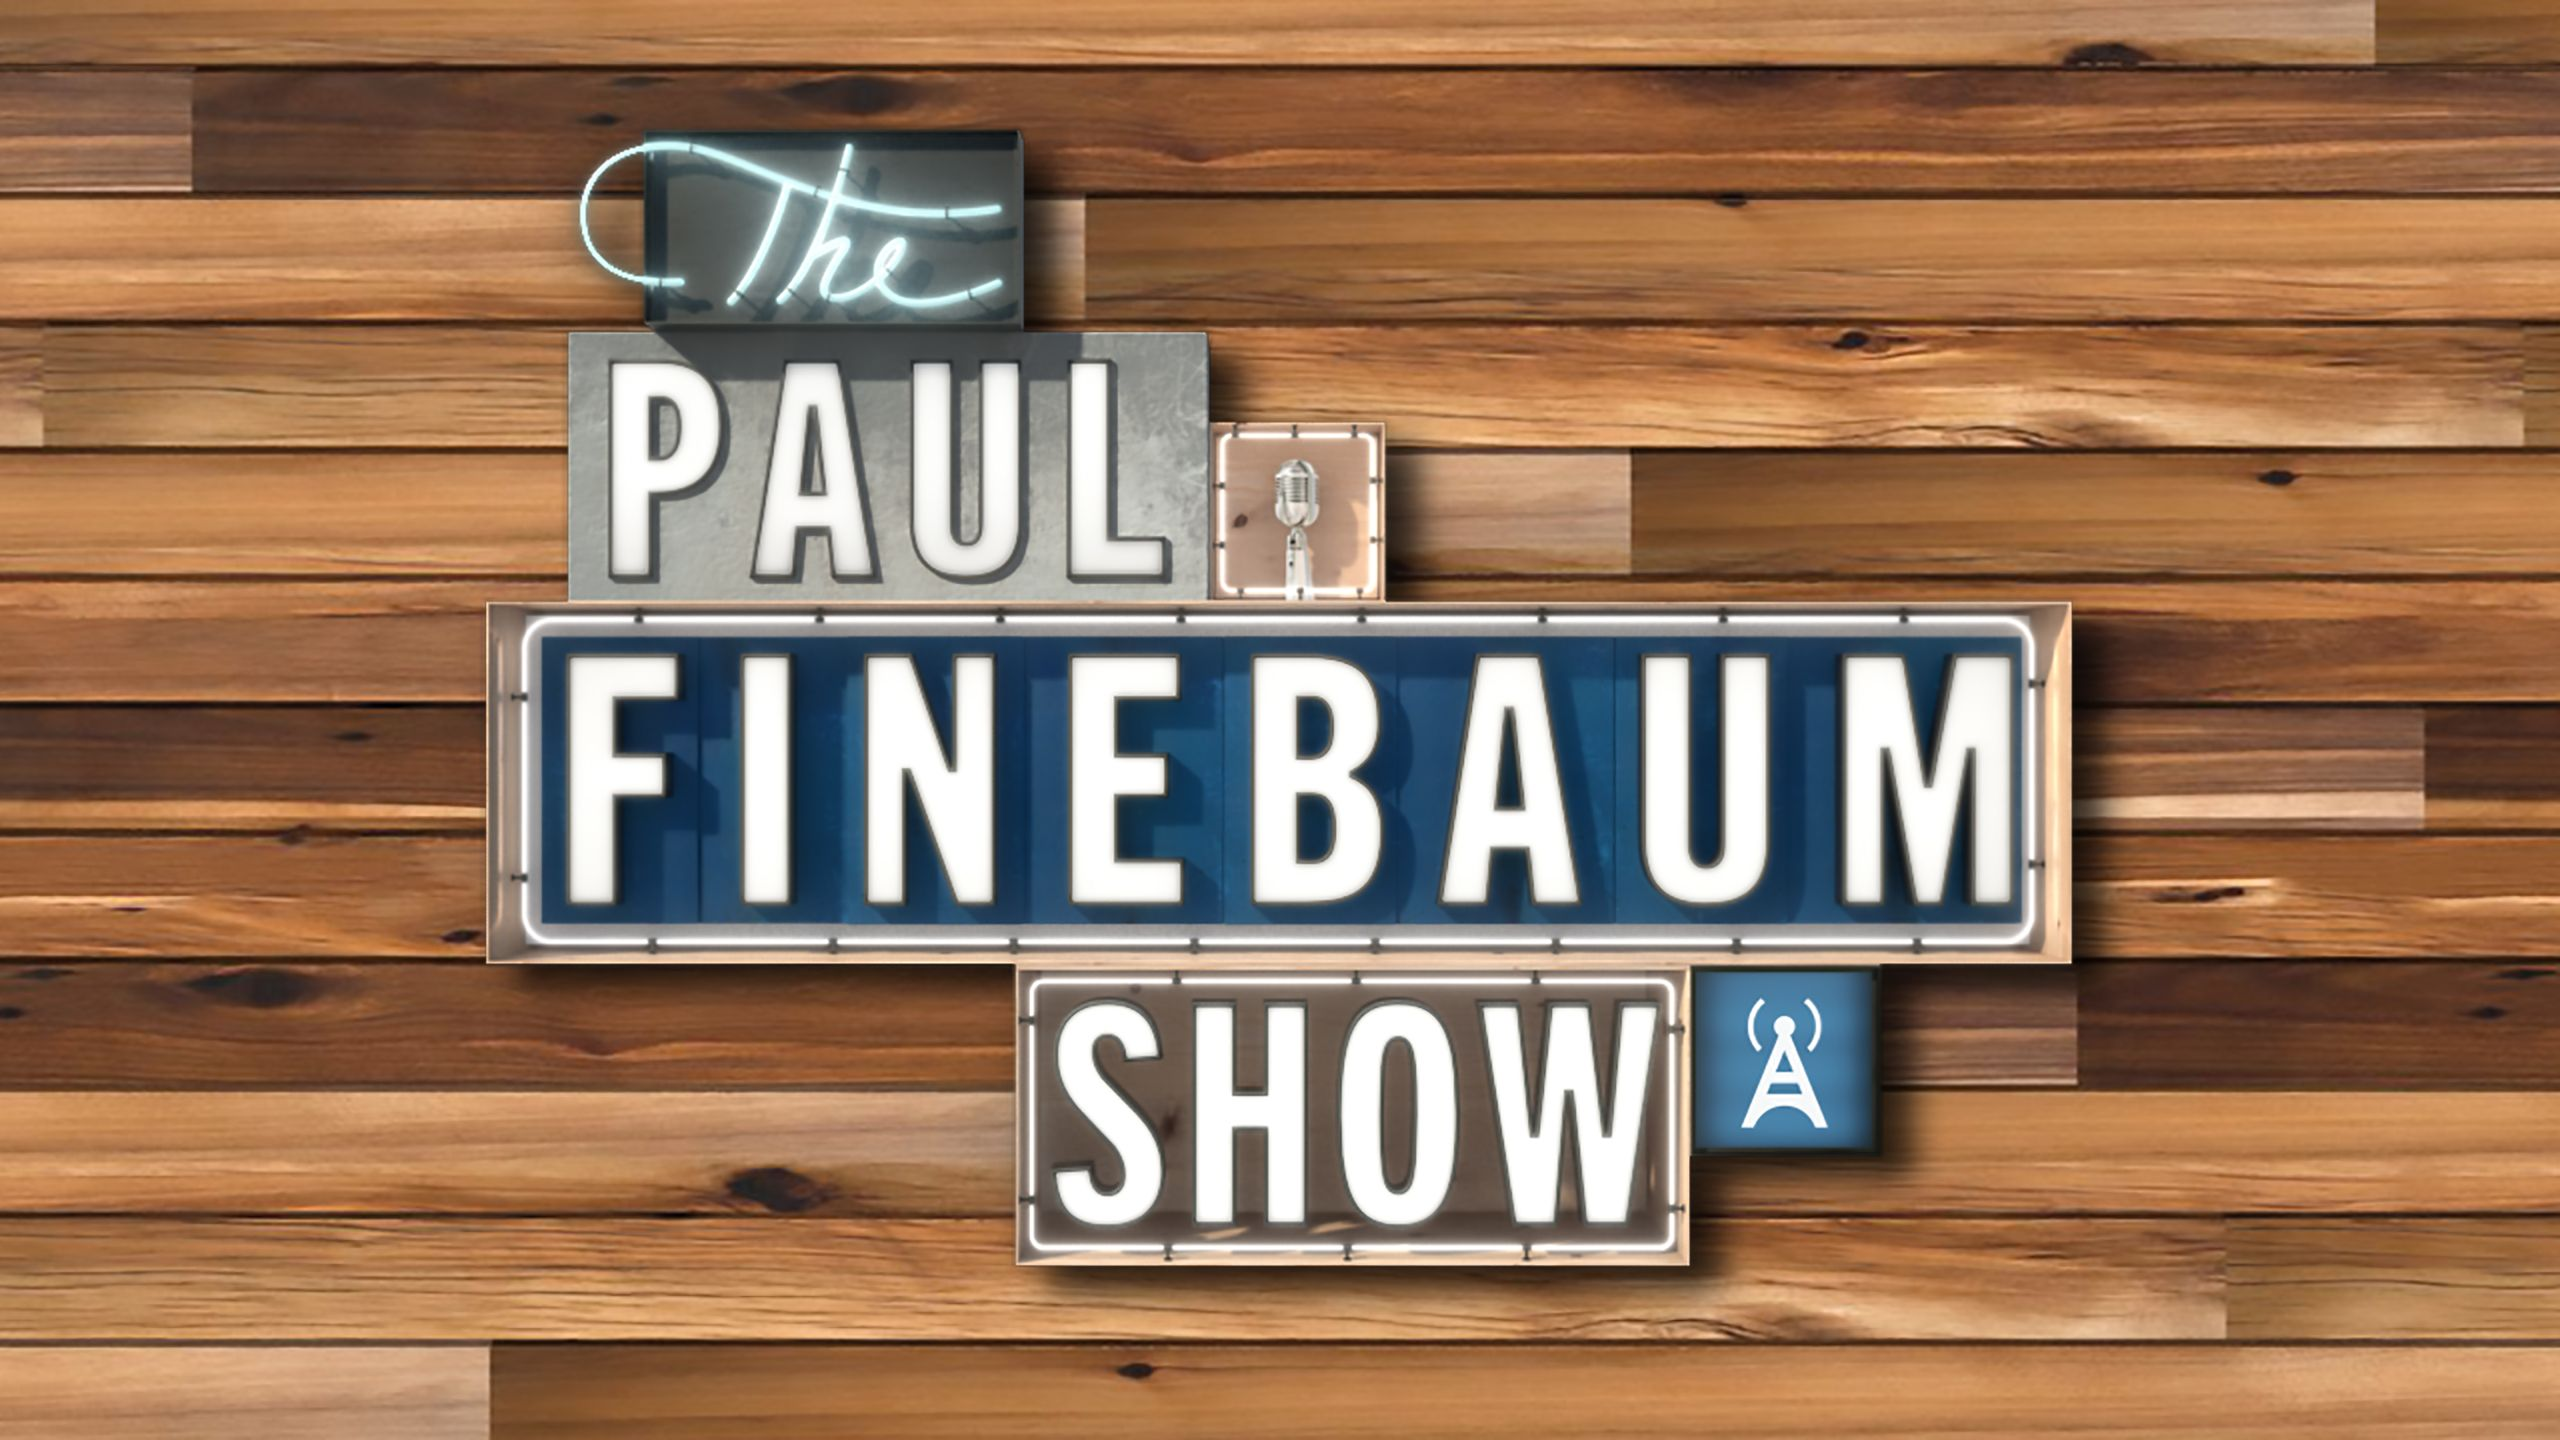 Wed, 7/18 - The Paul Finebaum Show Presented by Regions Bank